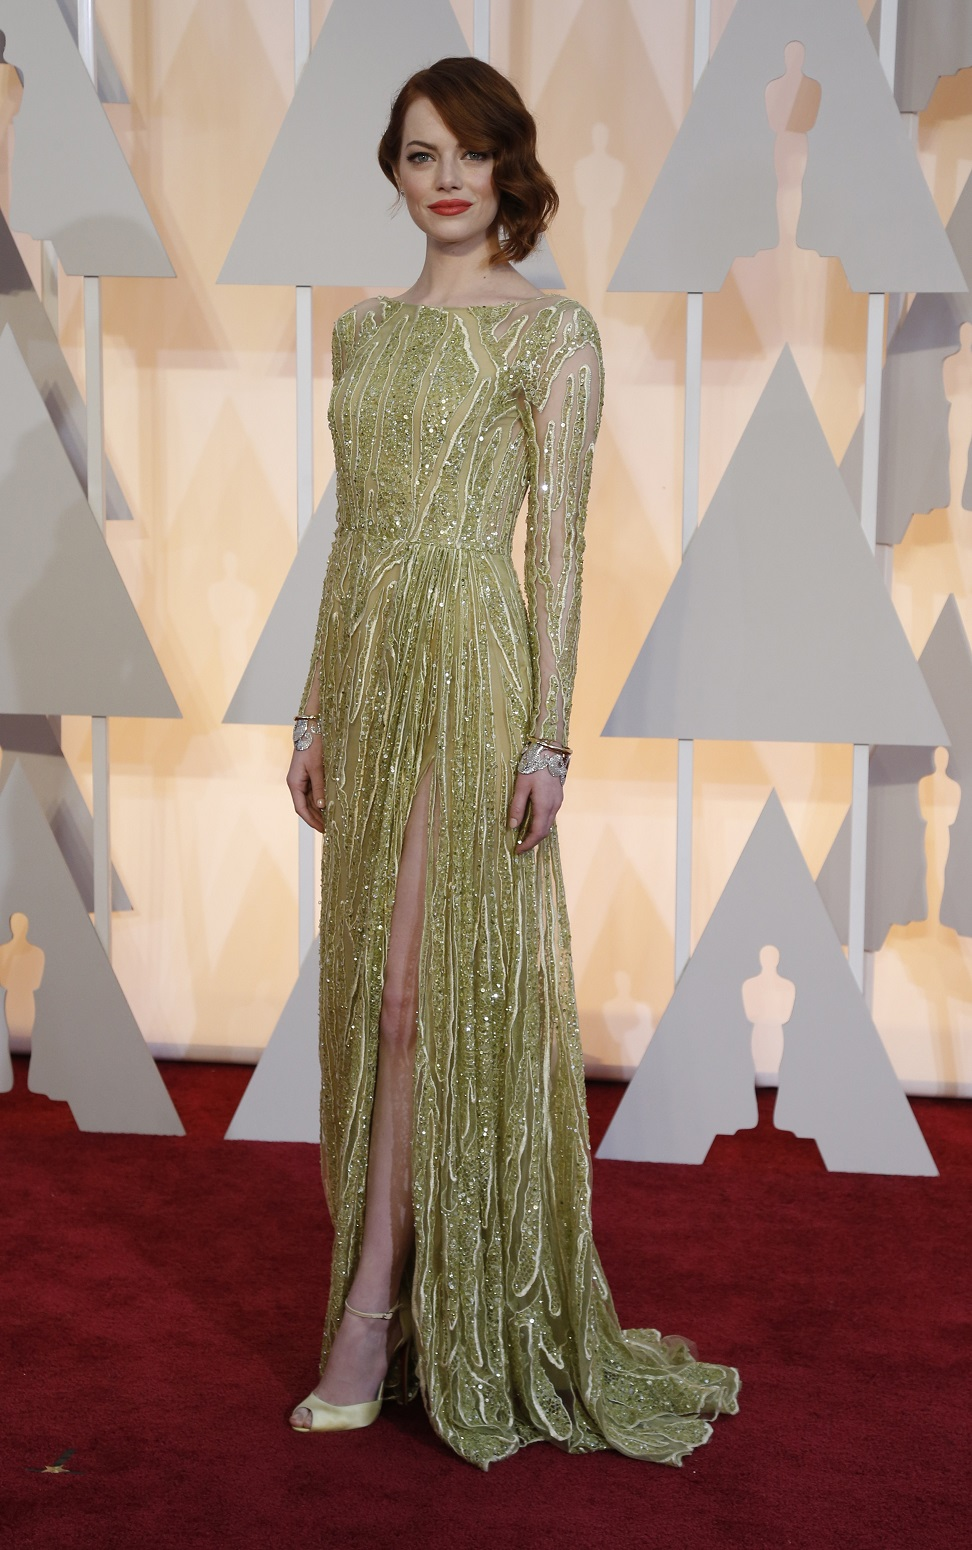 Actress Emma Stone arrives at the 87th Academy Awards in Hollywood